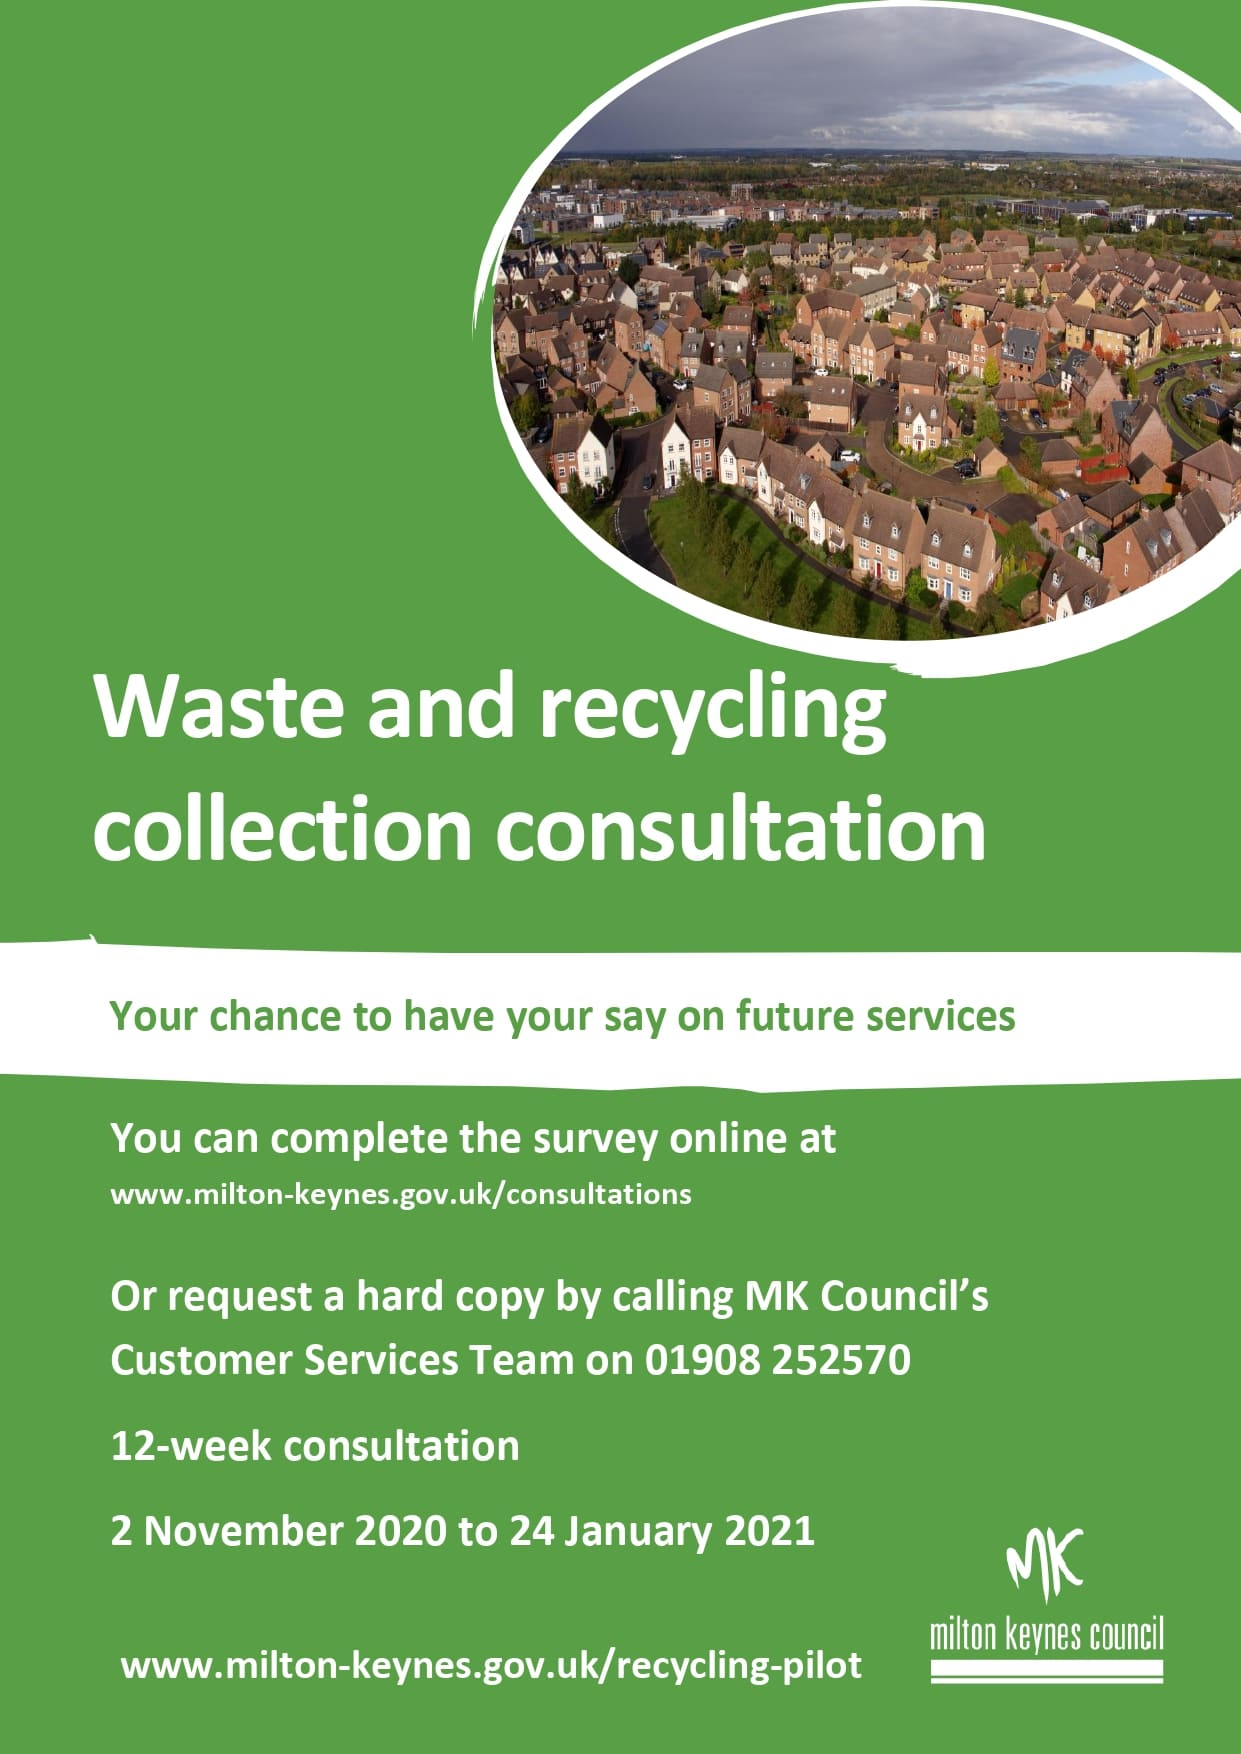 Image of Consultation poster